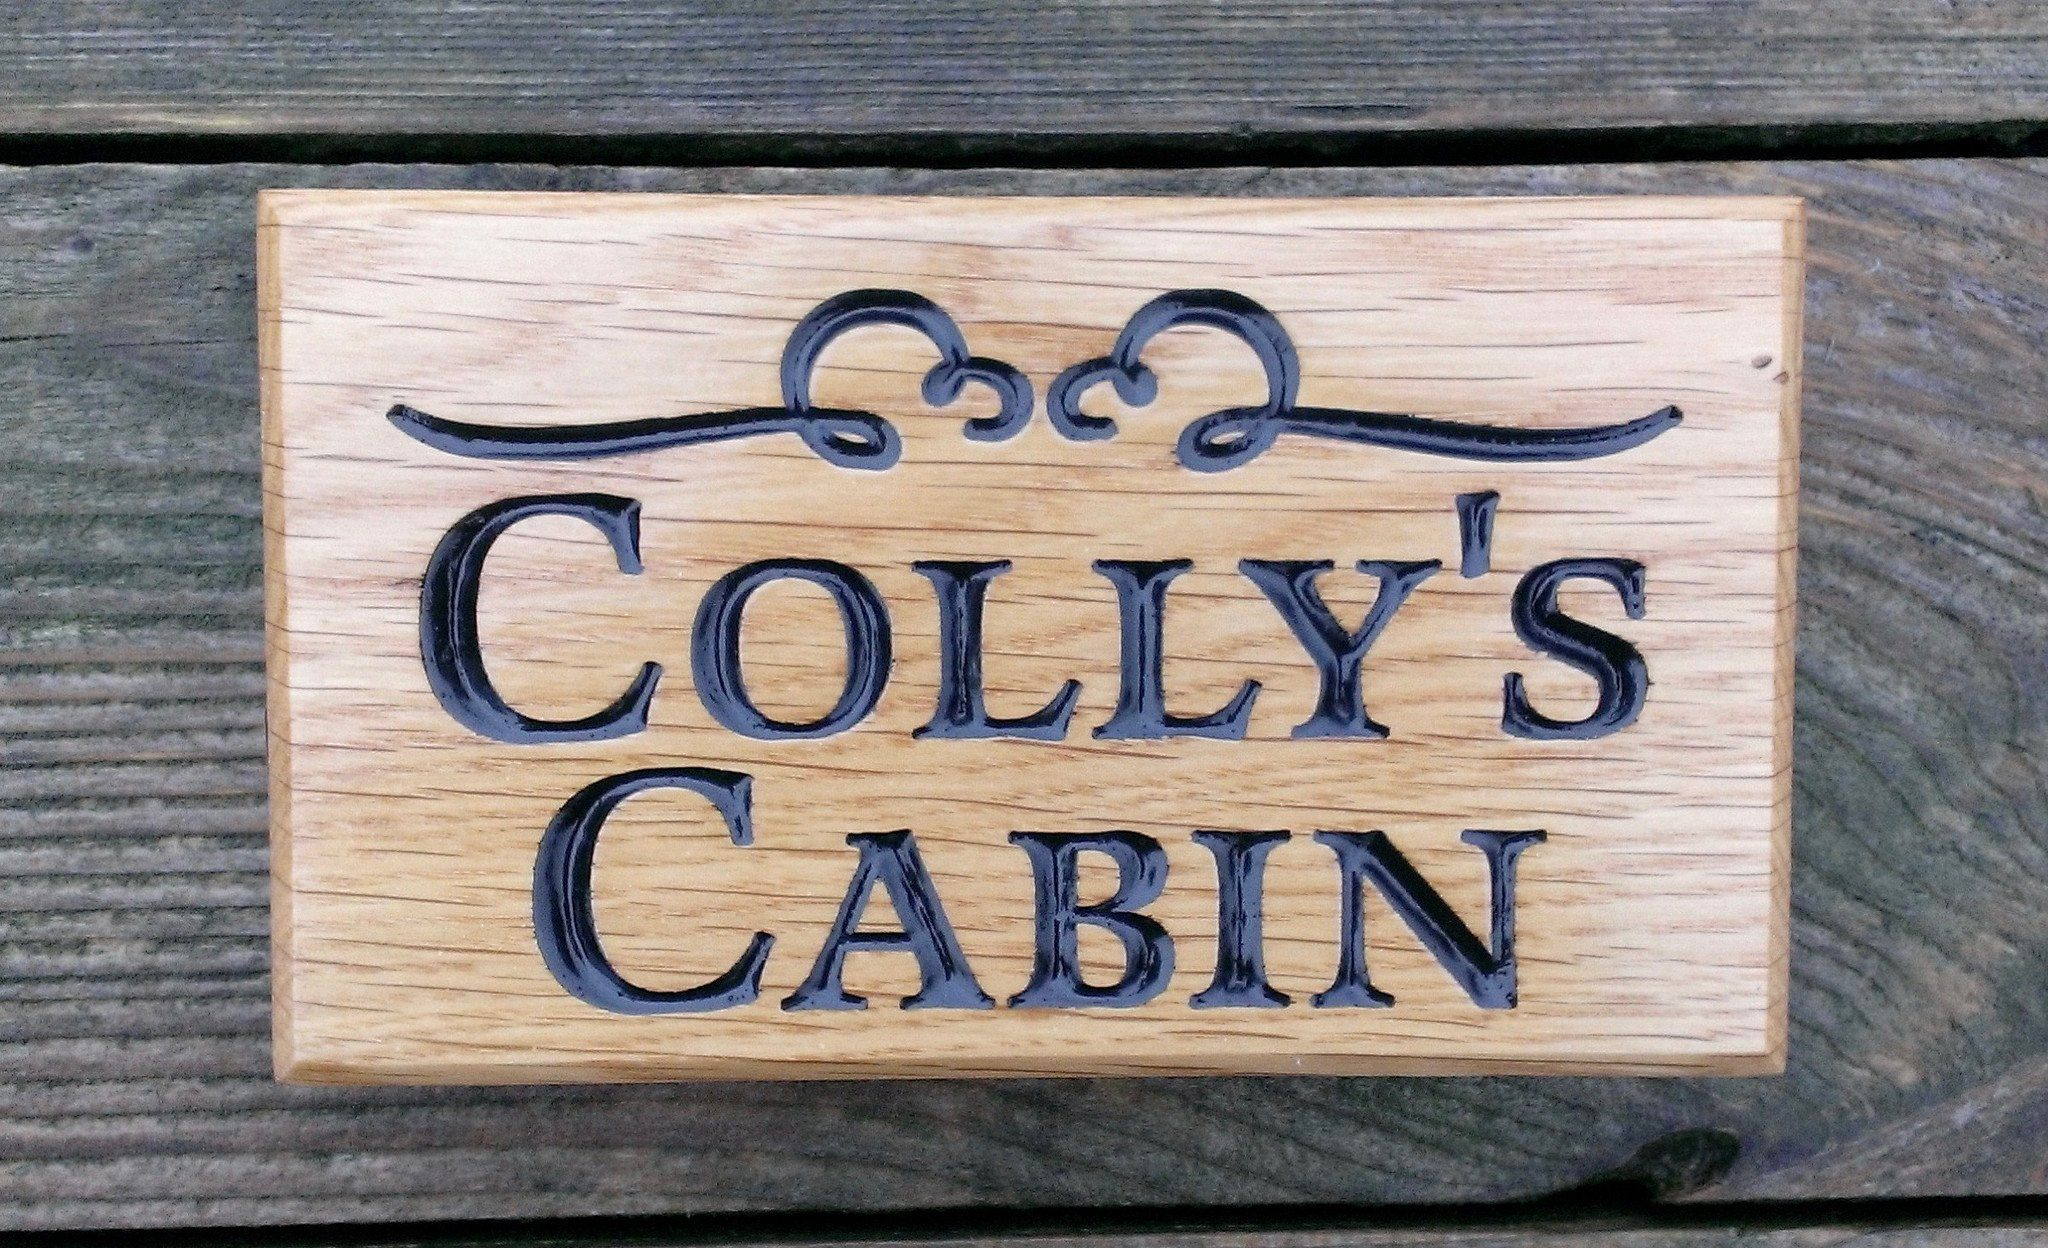 Extra small house name plate engraved with collys cabin and scroll font latienne